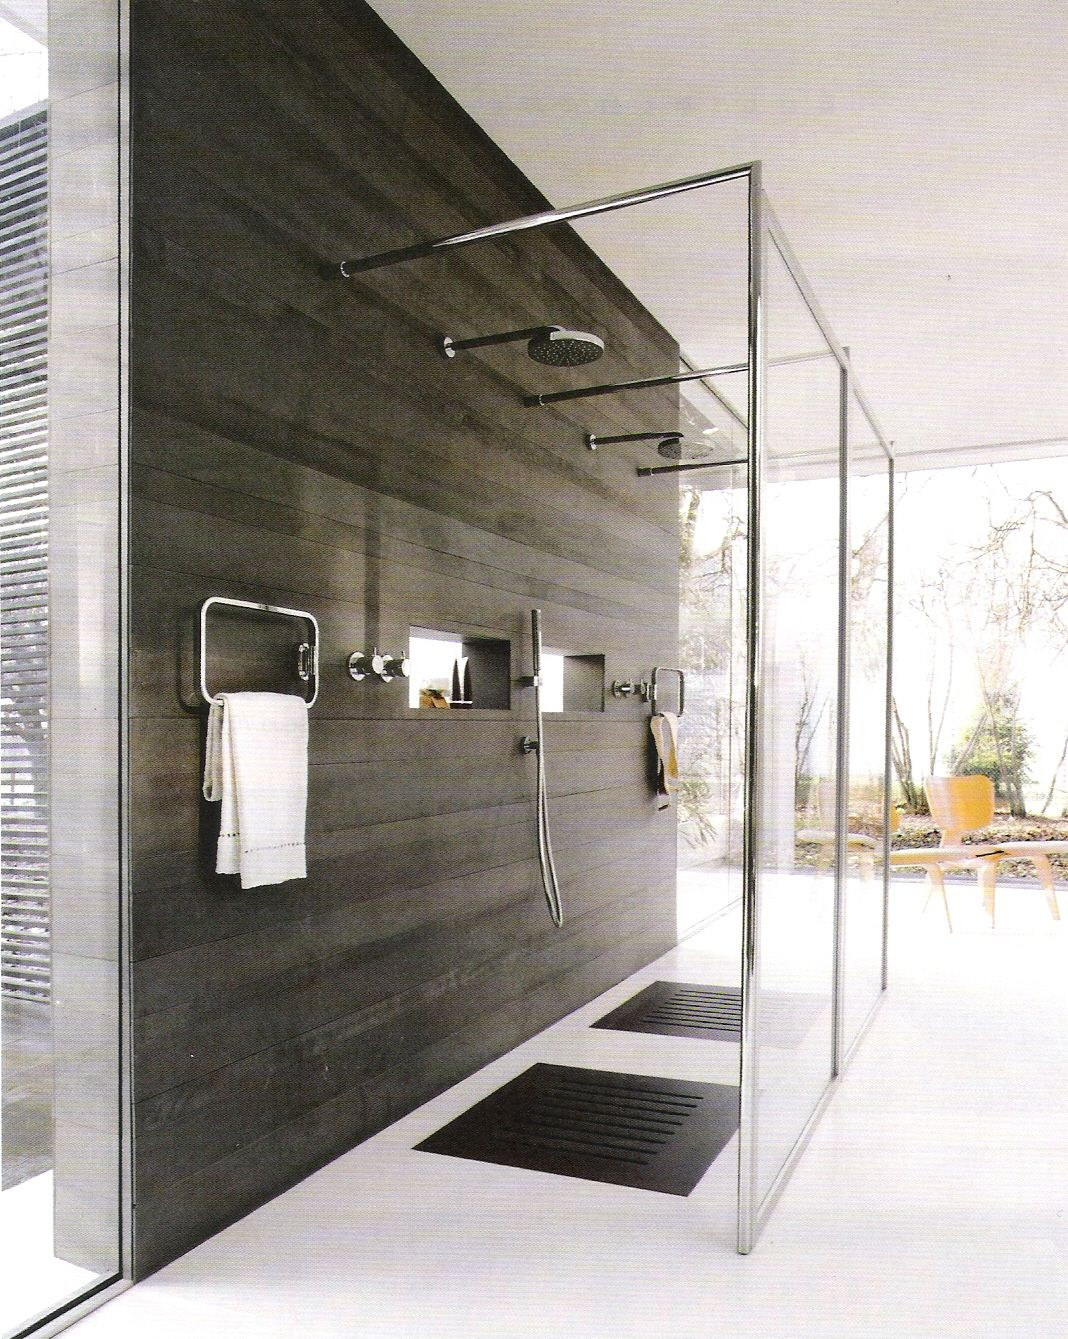 25 Incredible Open Shower Ideas Open showers, Showers